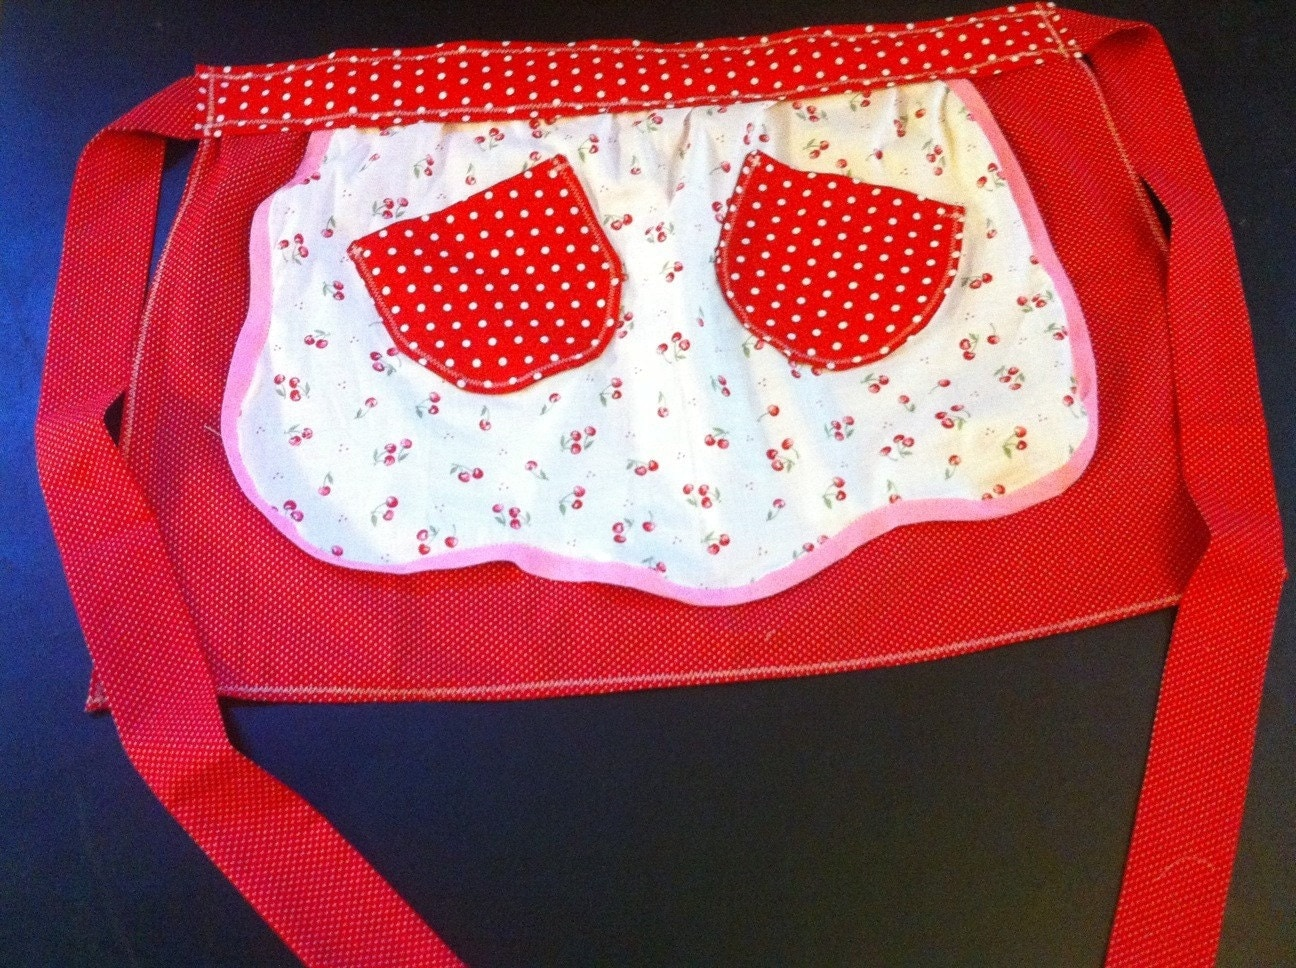 Cherry on red polka dot half apron vintage style